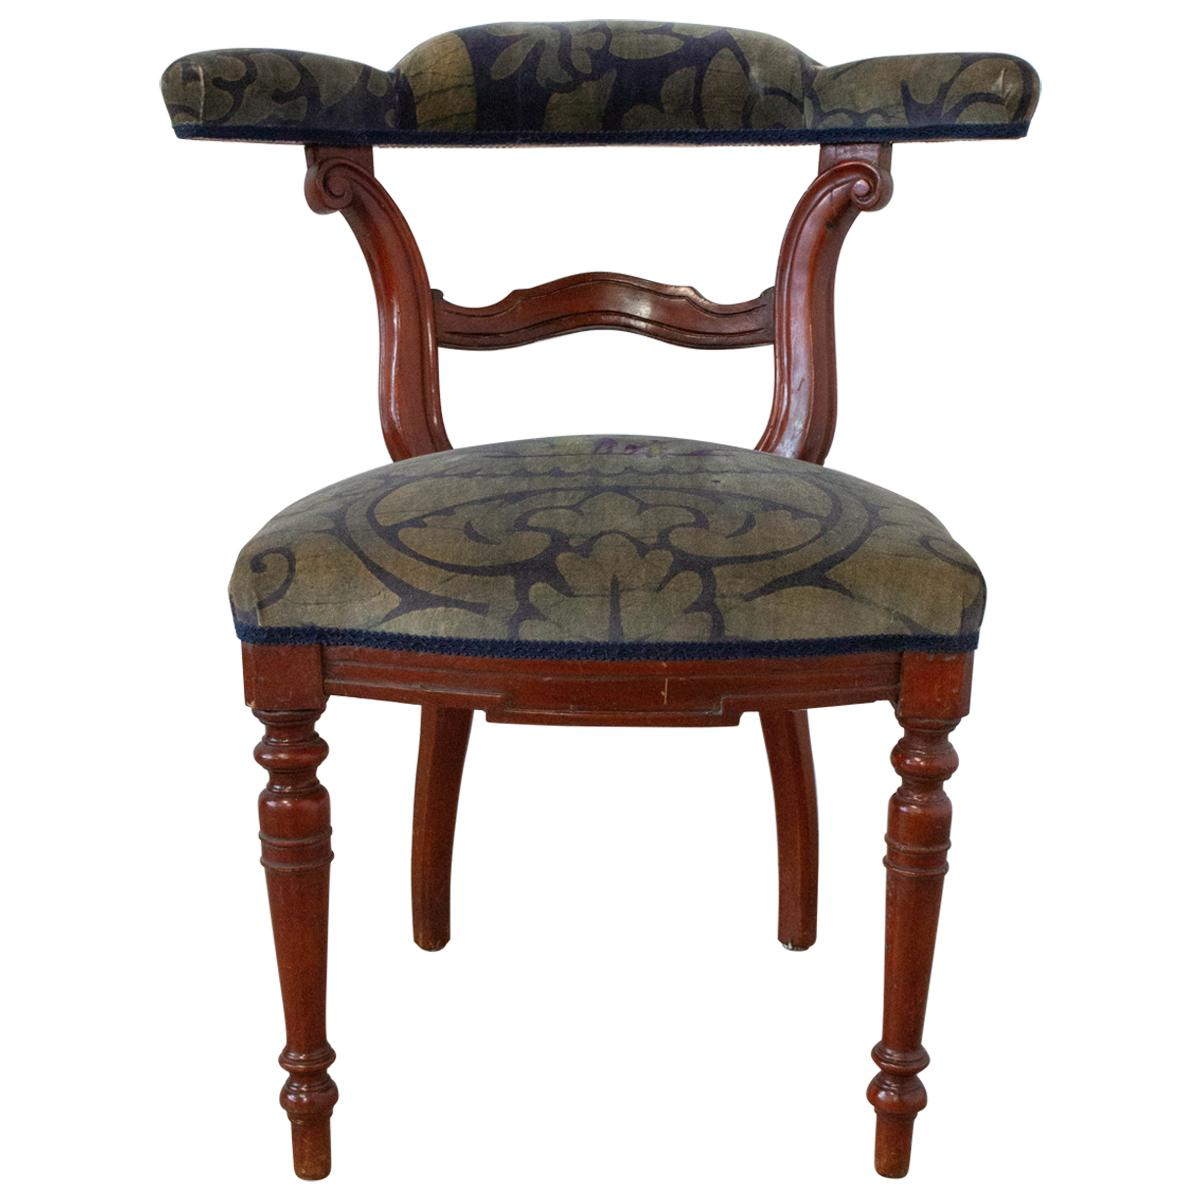 Empire Chair French Desk Chair 20th Century to be Re-Uphostered